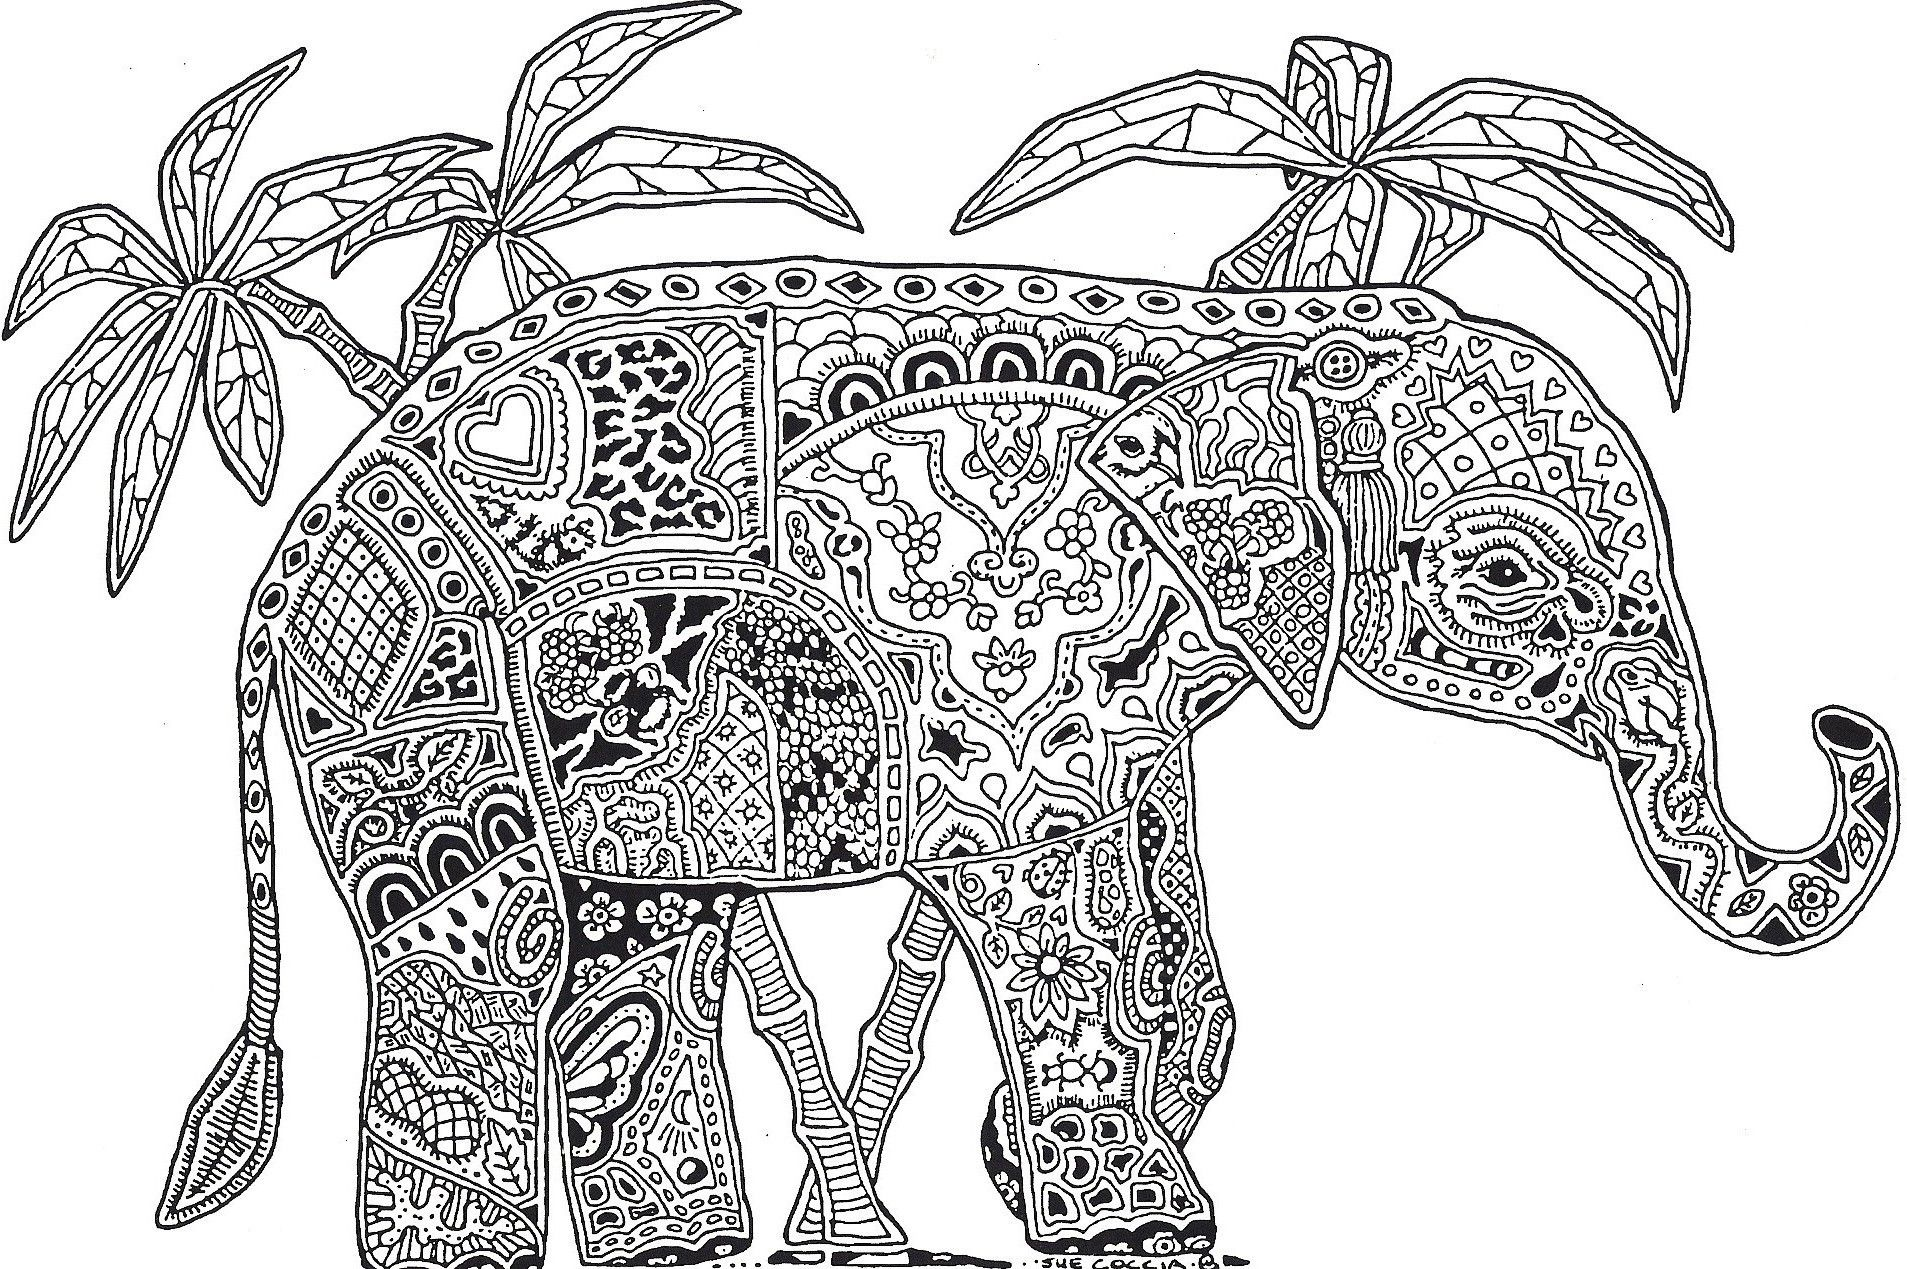 Don Forget Share Difficult Animals Coloring Pages Adults 909326 Jpg Jpeg Image 1907 12 Elephant Coloring Page Animal Coloring Pages Abstract Coloring Pages